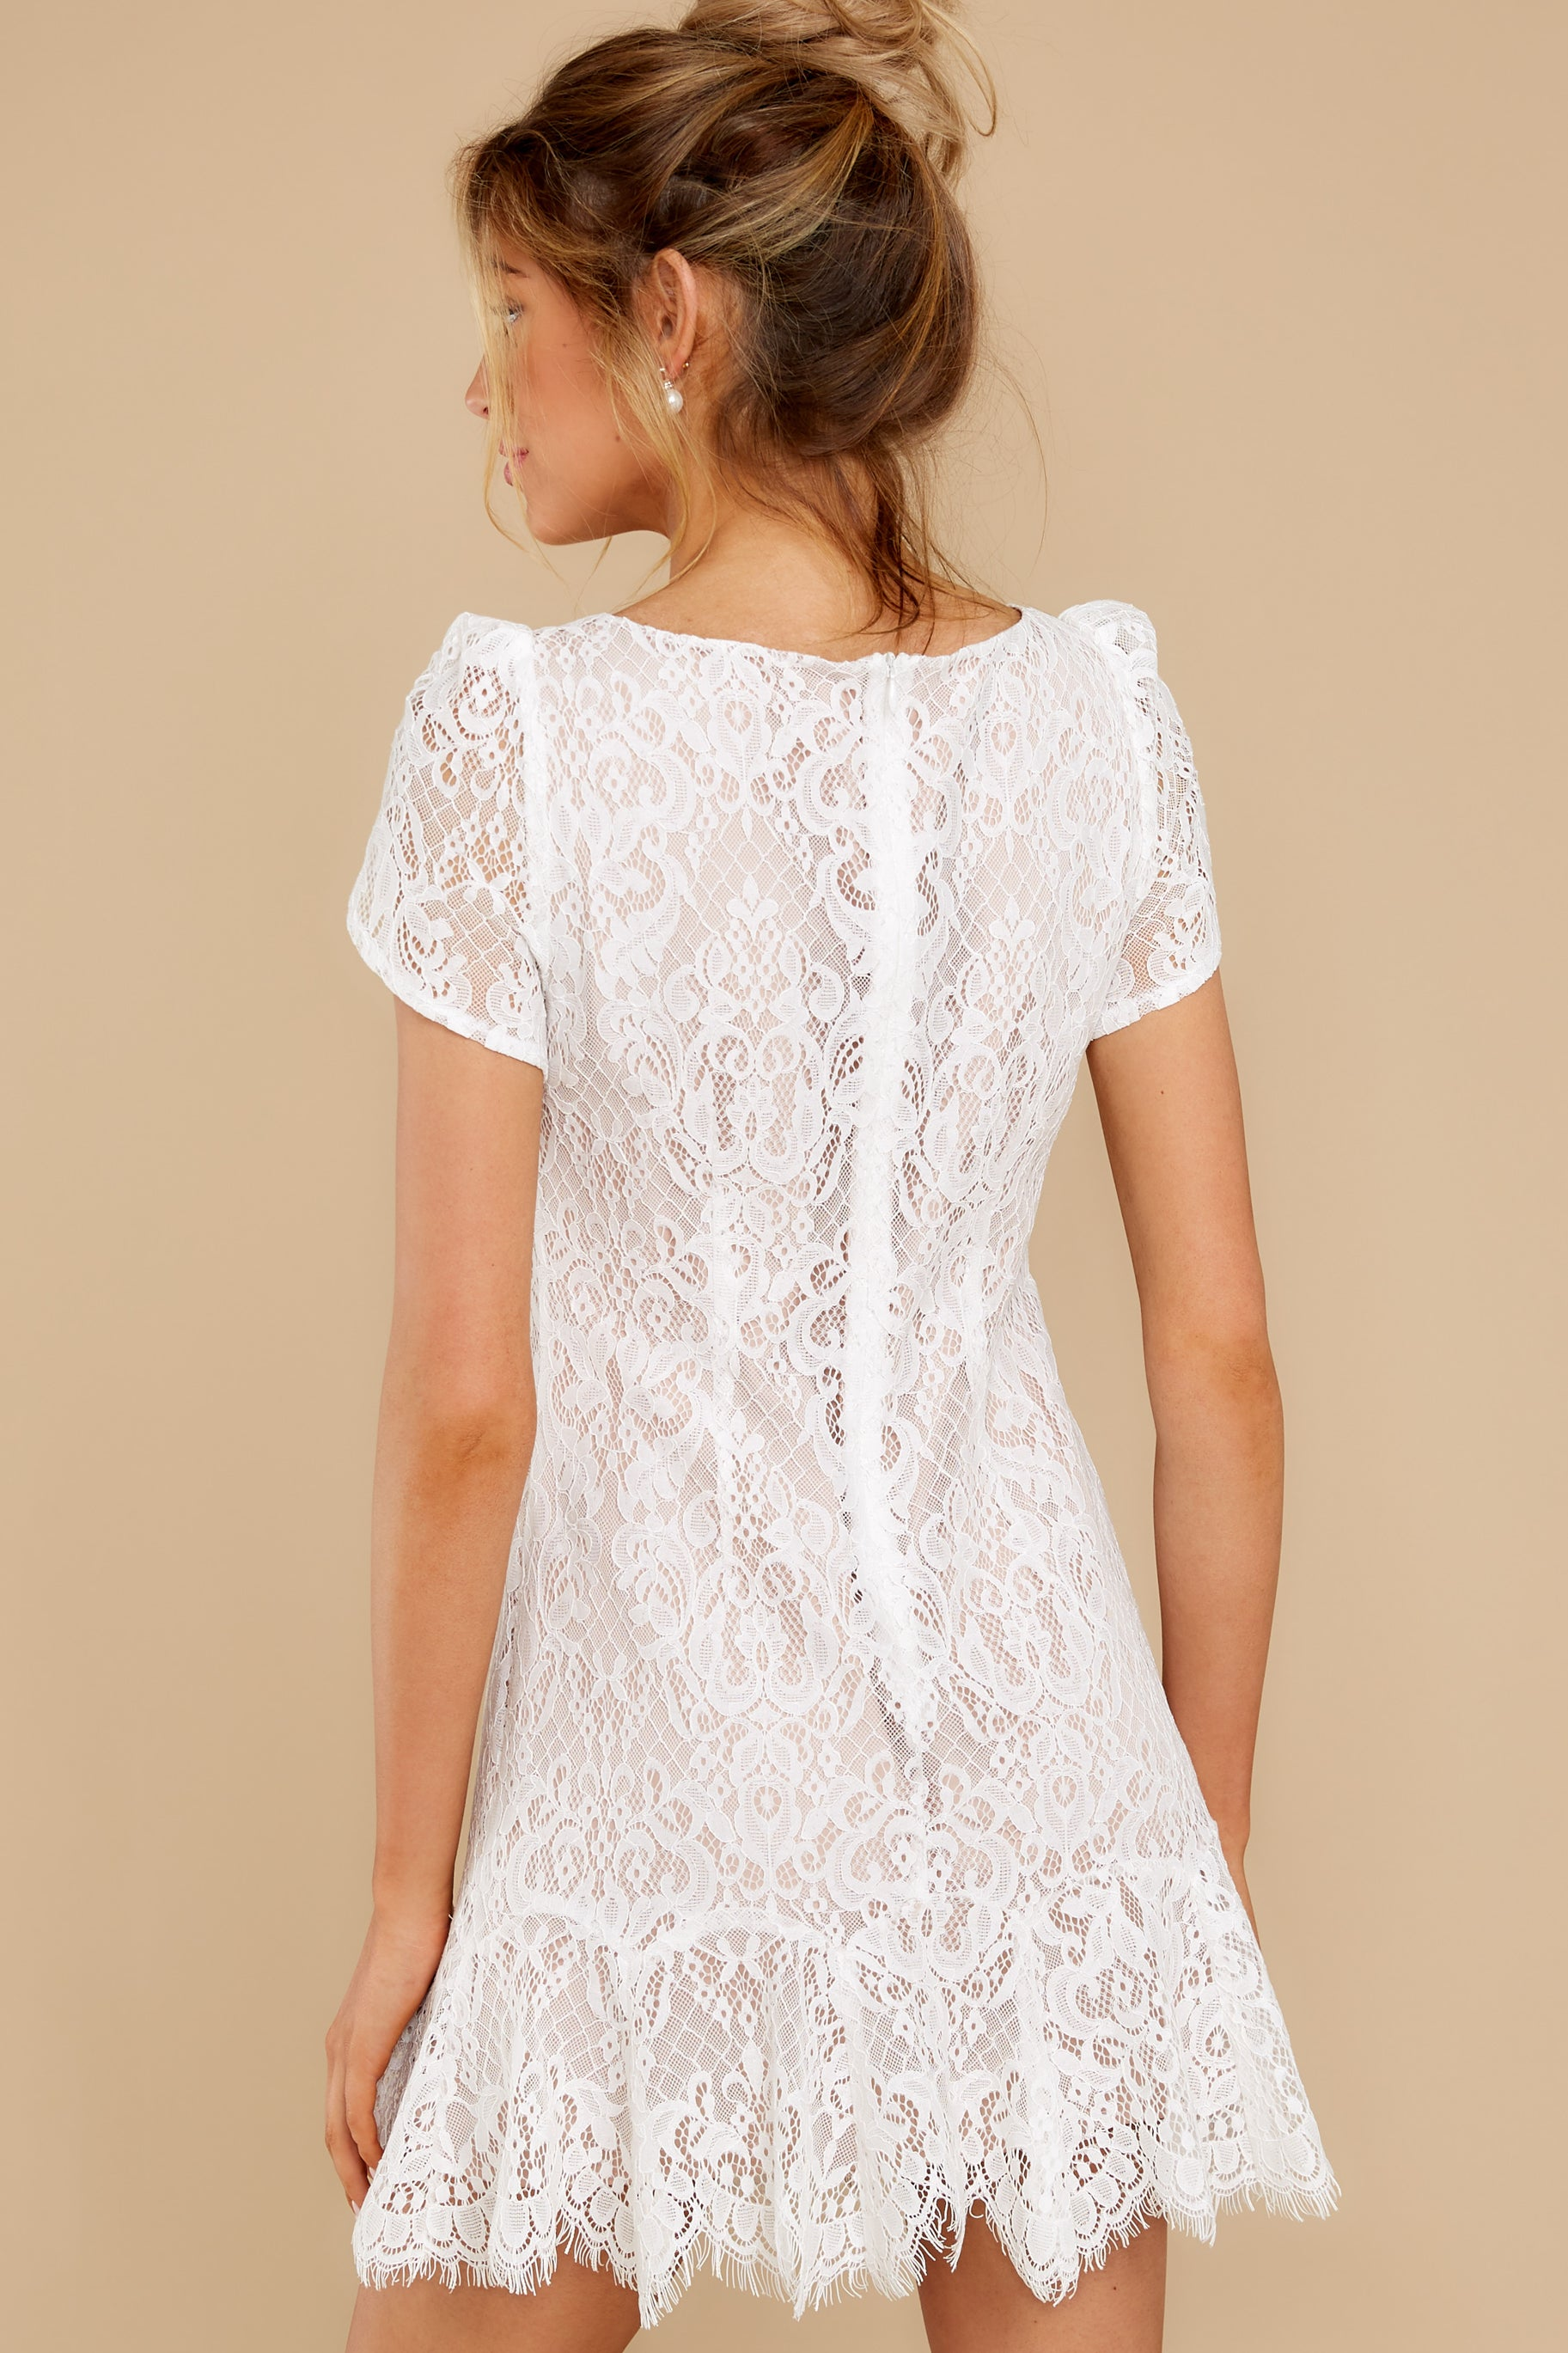 8 First Touch Ivory Lace Dress at reddress.com